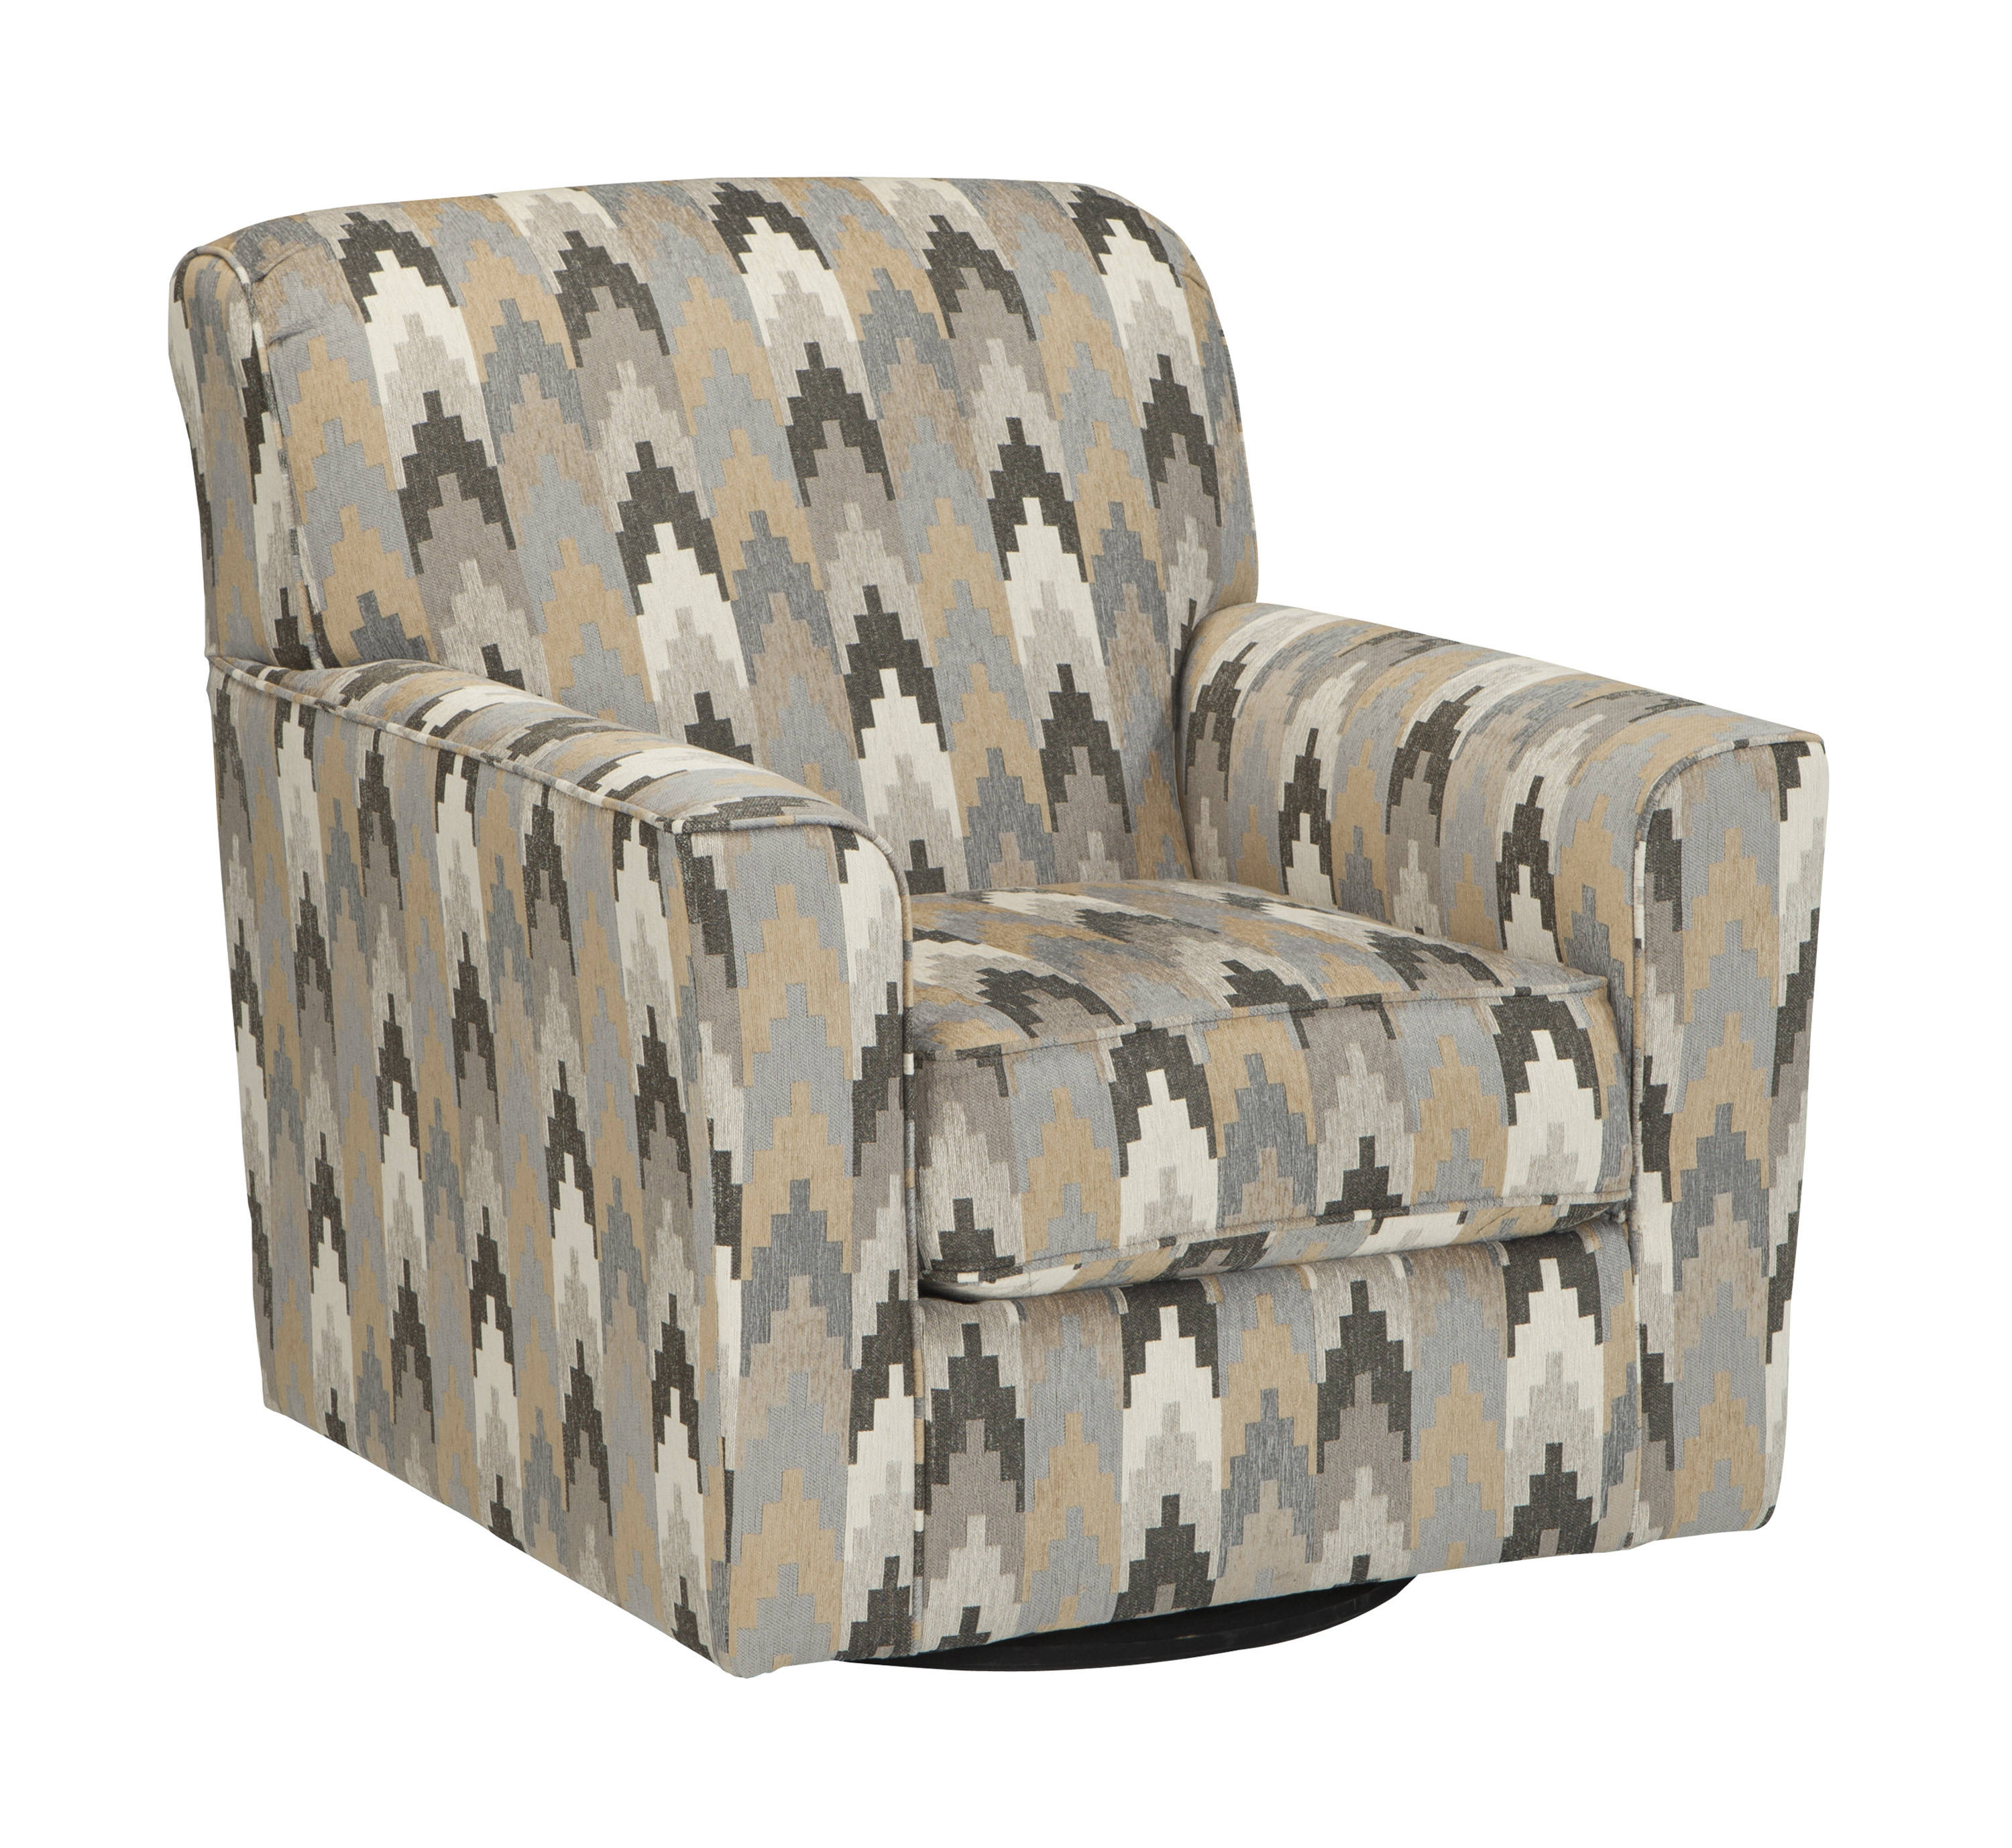 Ashley Furniture Braxlin Charcoal Swivel Accent Chair | The Classy Home Regarding Charcoal Swivel Chairs (View 18 of 25)